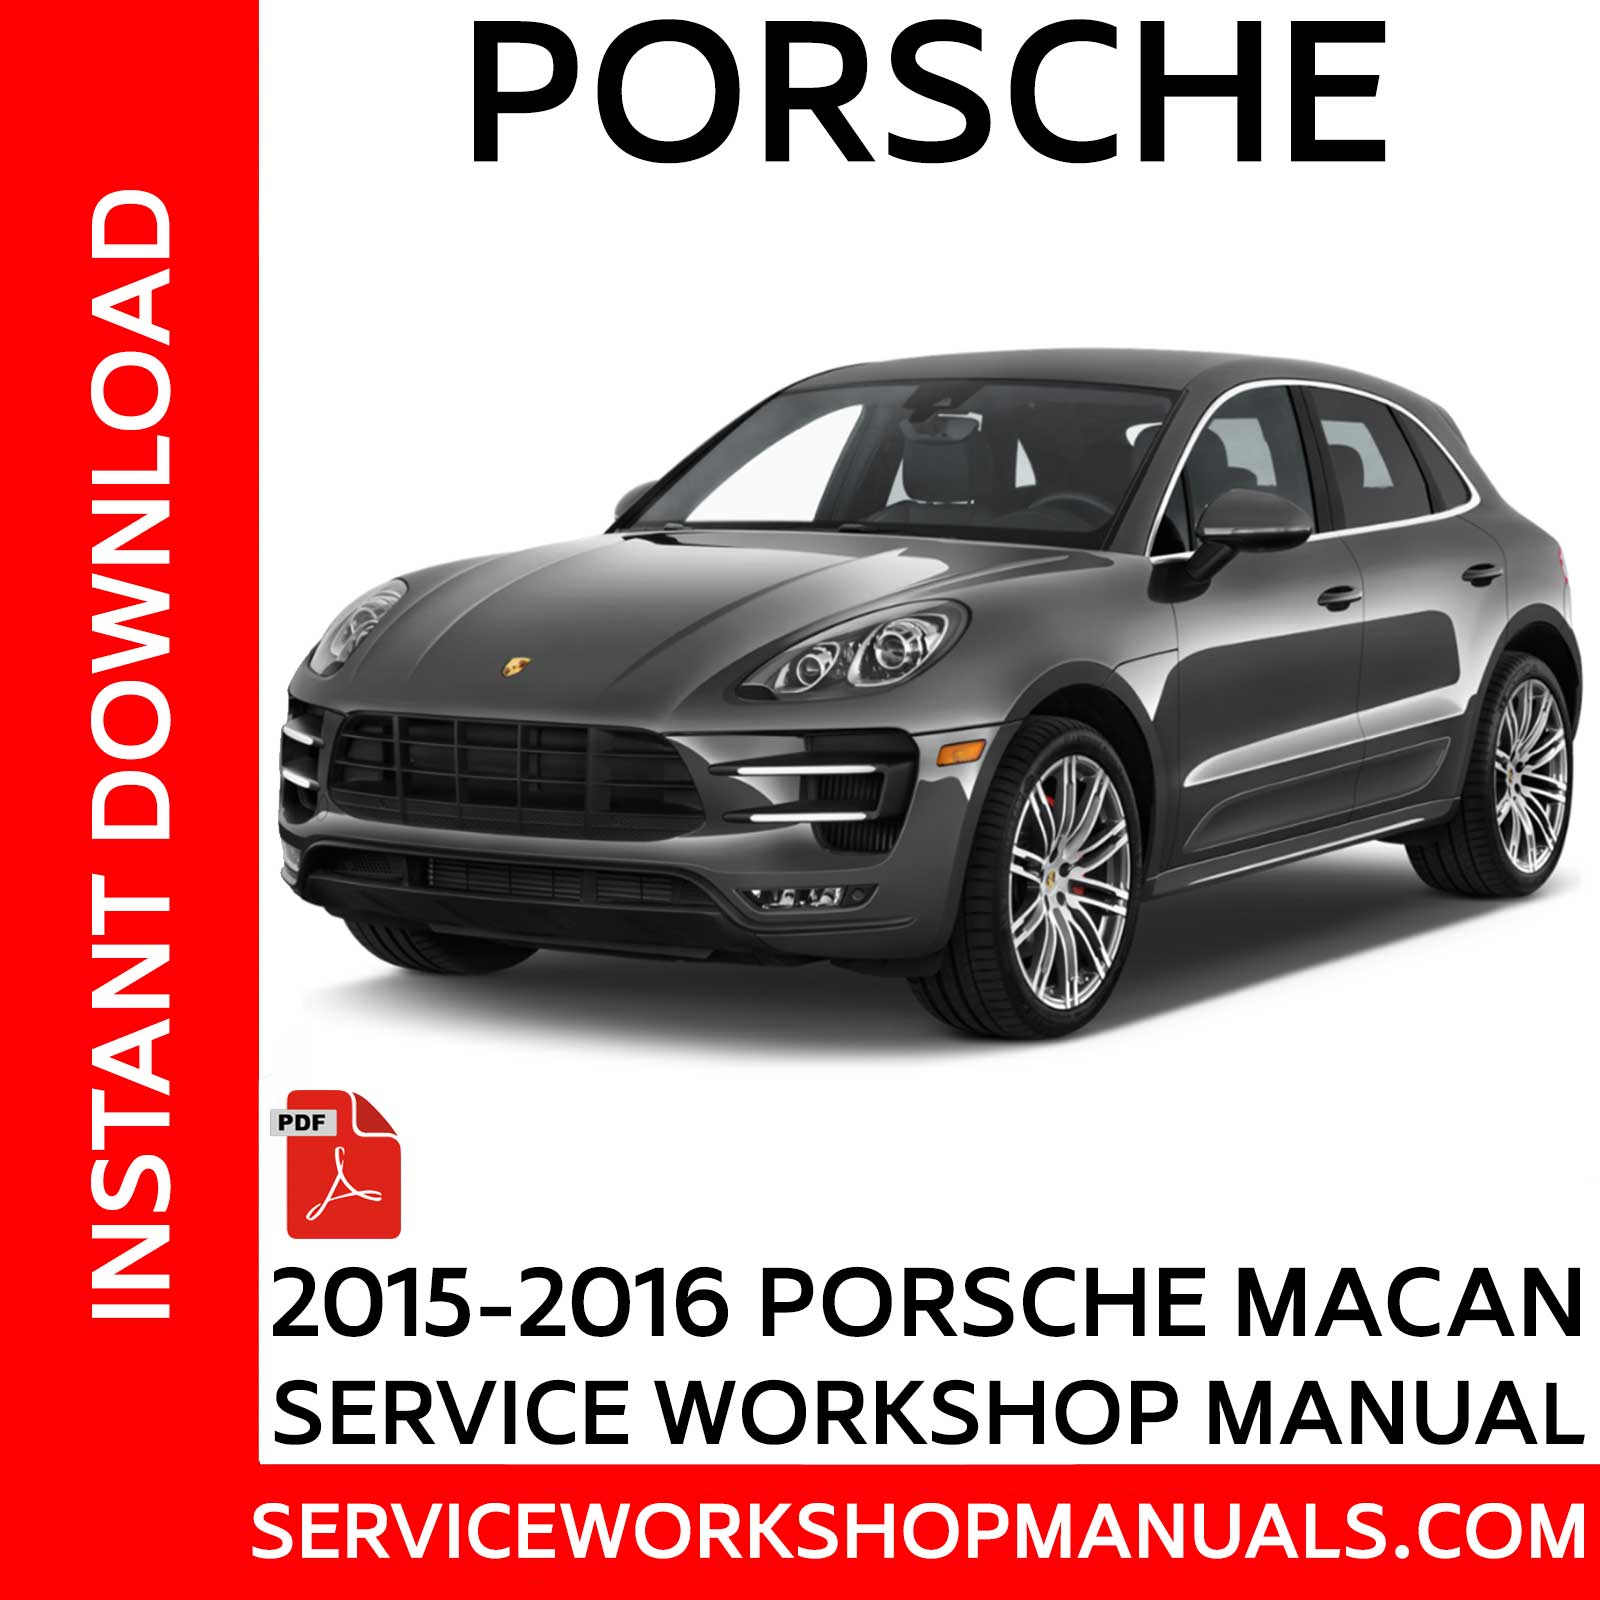 [DIAGRAM_1CA]  Porsche Macan 2015-2016 Service Workshop Manual - Service Workshop Manuals | 2015 Porsche Macan Wiring Diagram |  | Service Workshop Manuals